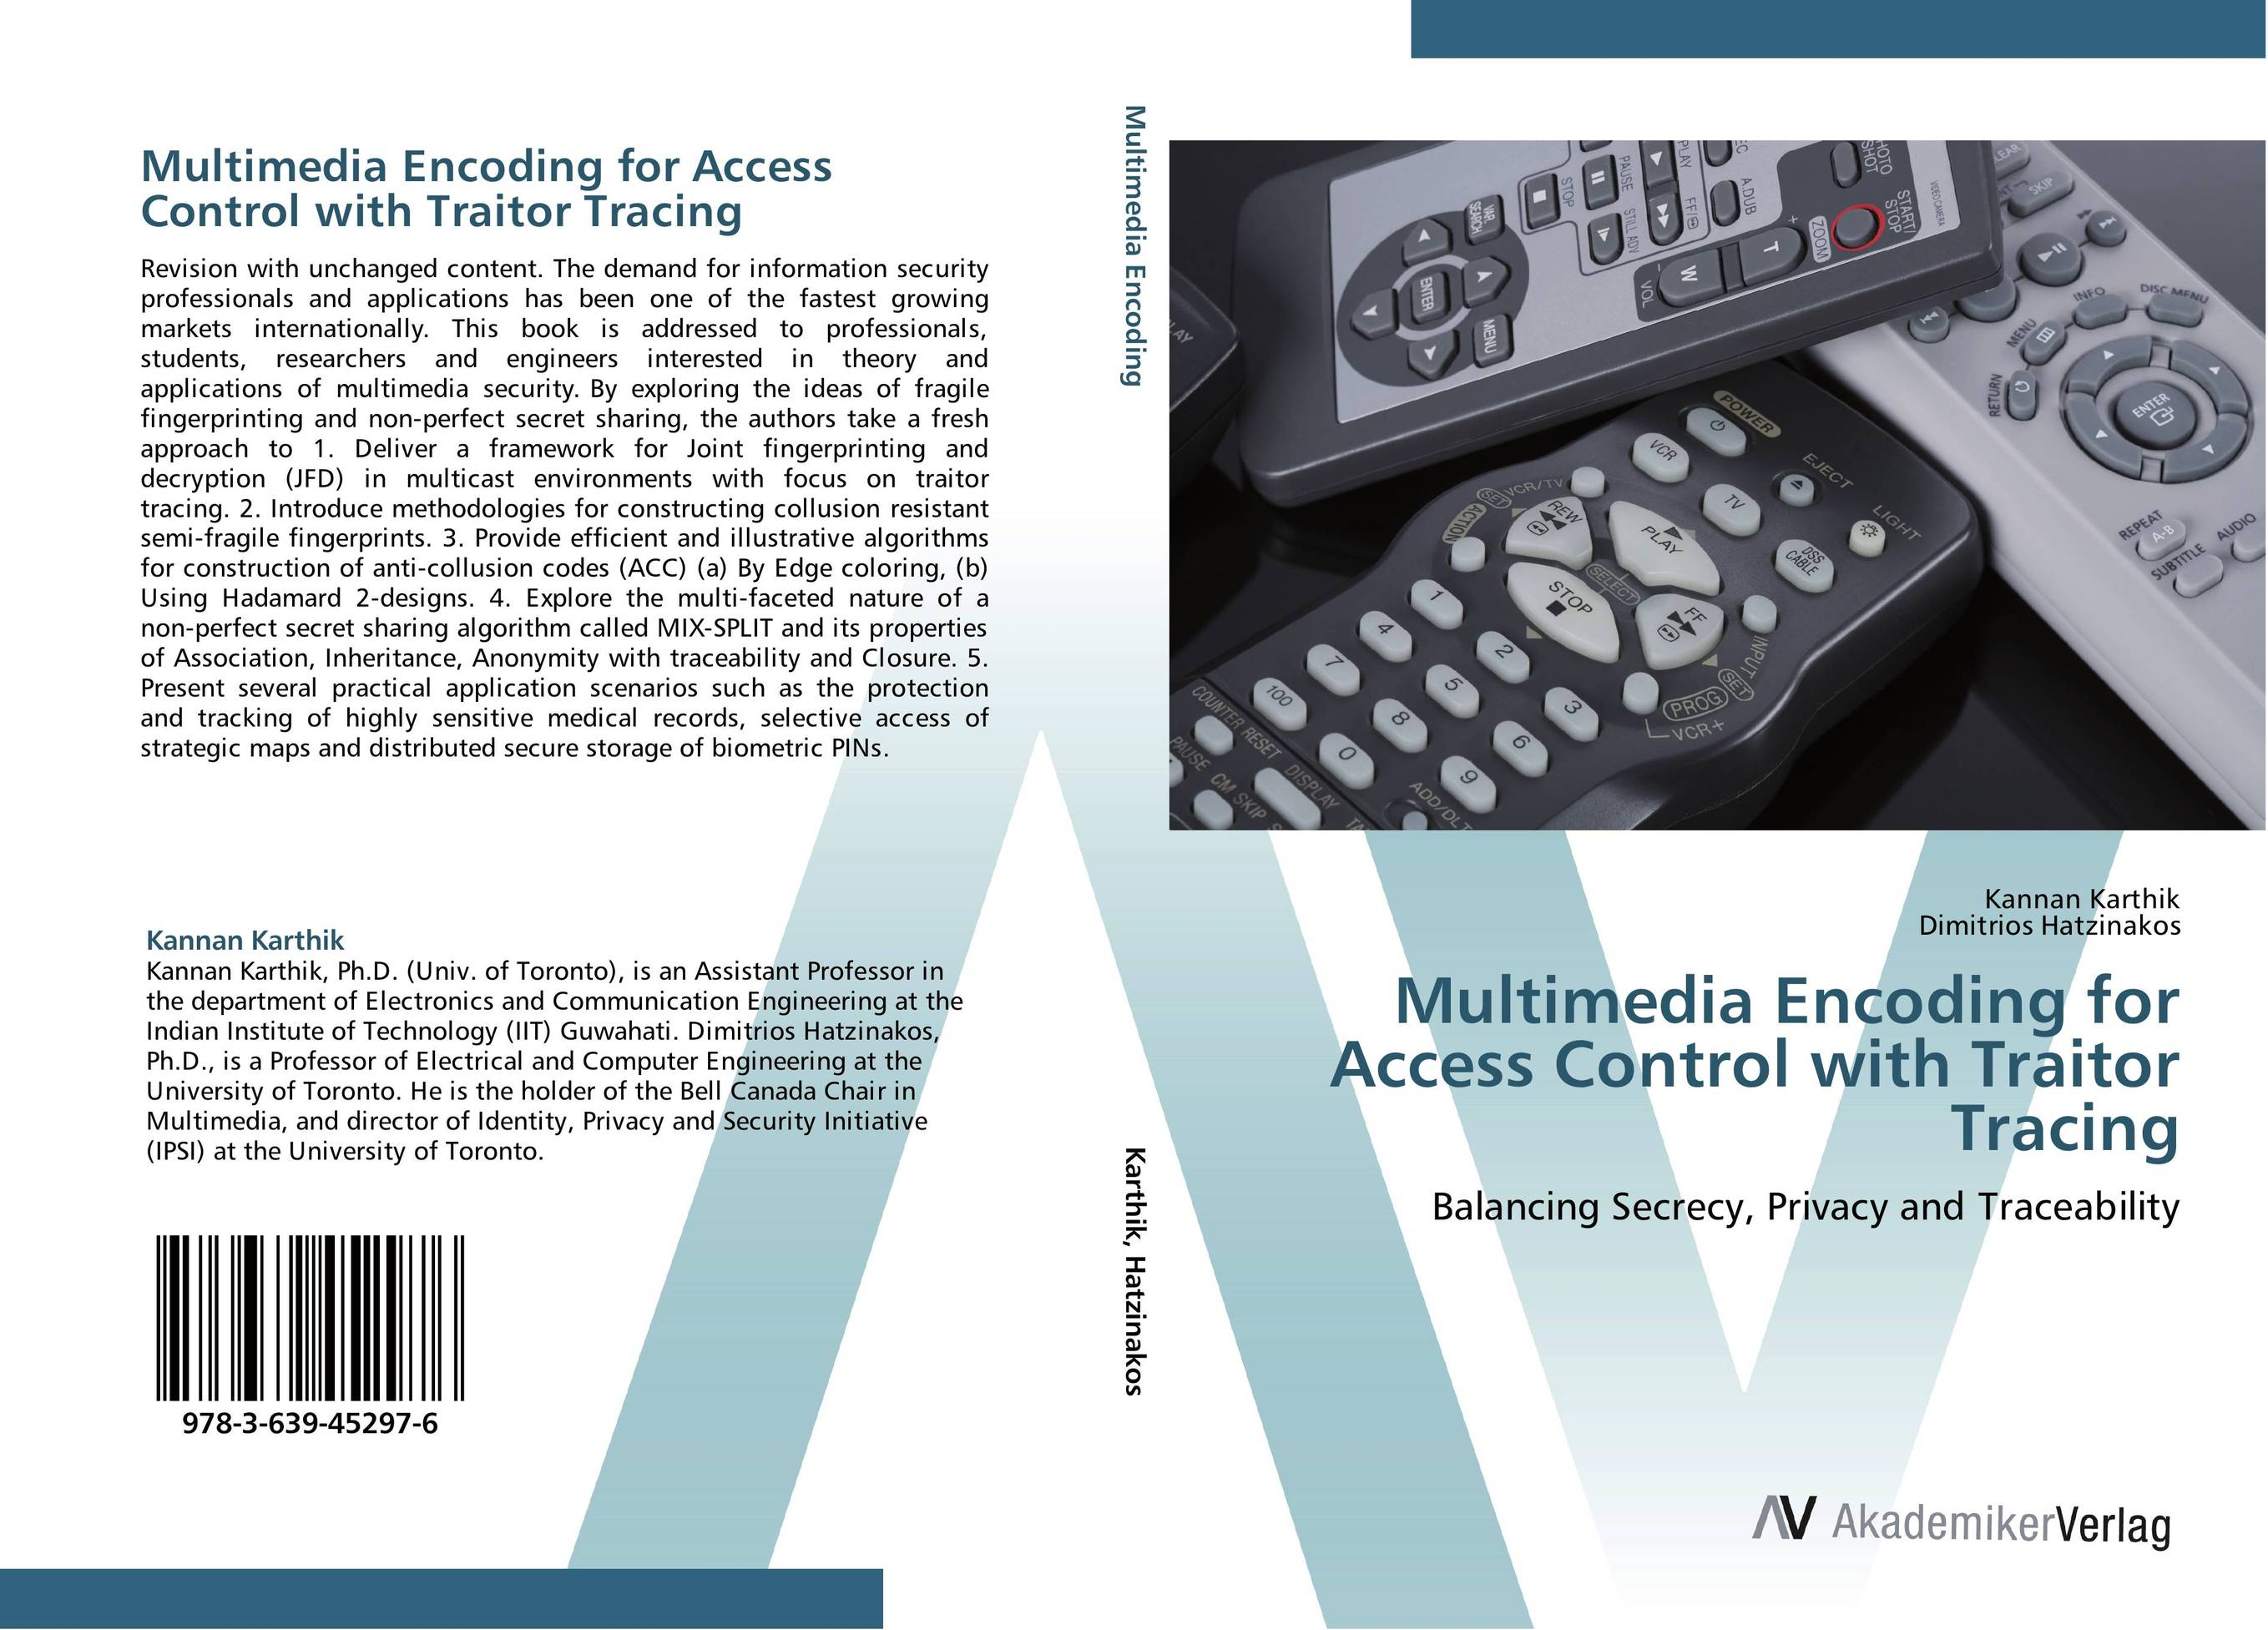 Multimedia Encoding for Access Control with Traitor Tracing collusion